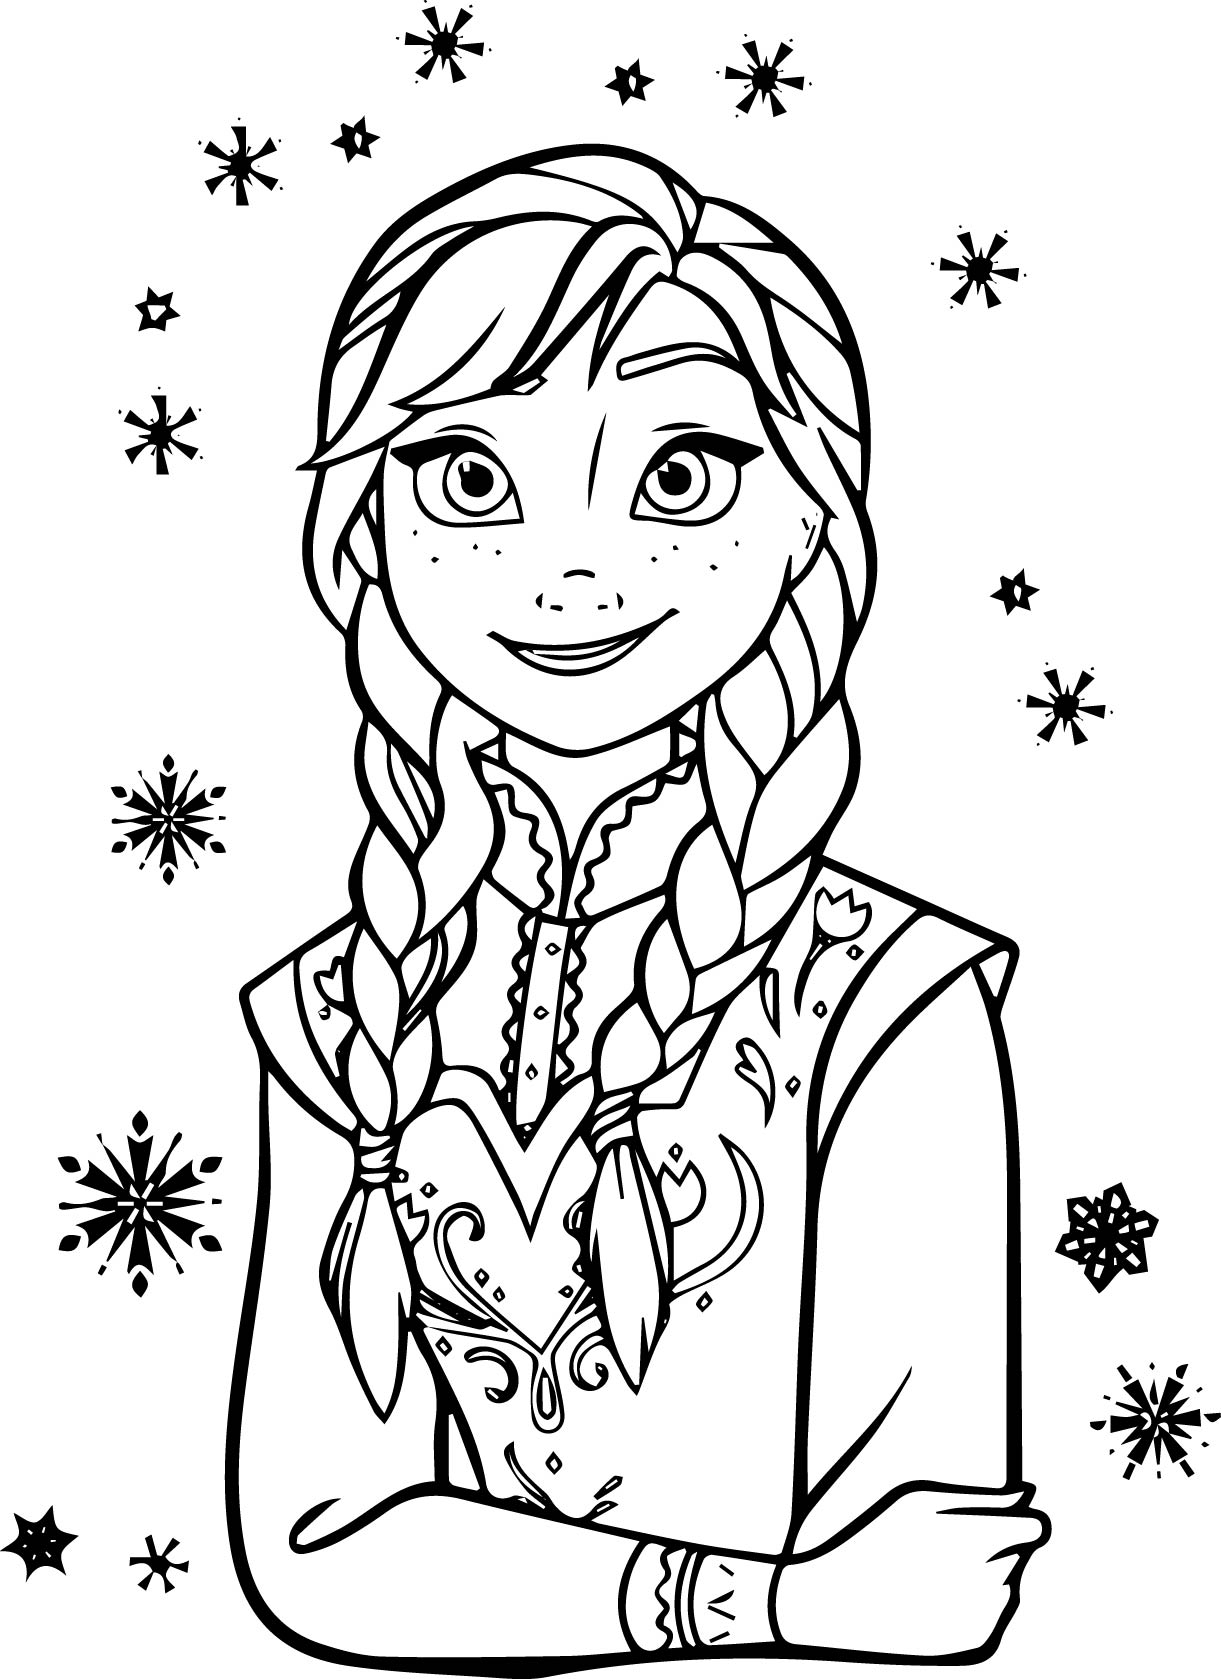 free printable frozen coloring pages frozen coloring pages only coloring pages frozen coloring pages printable free